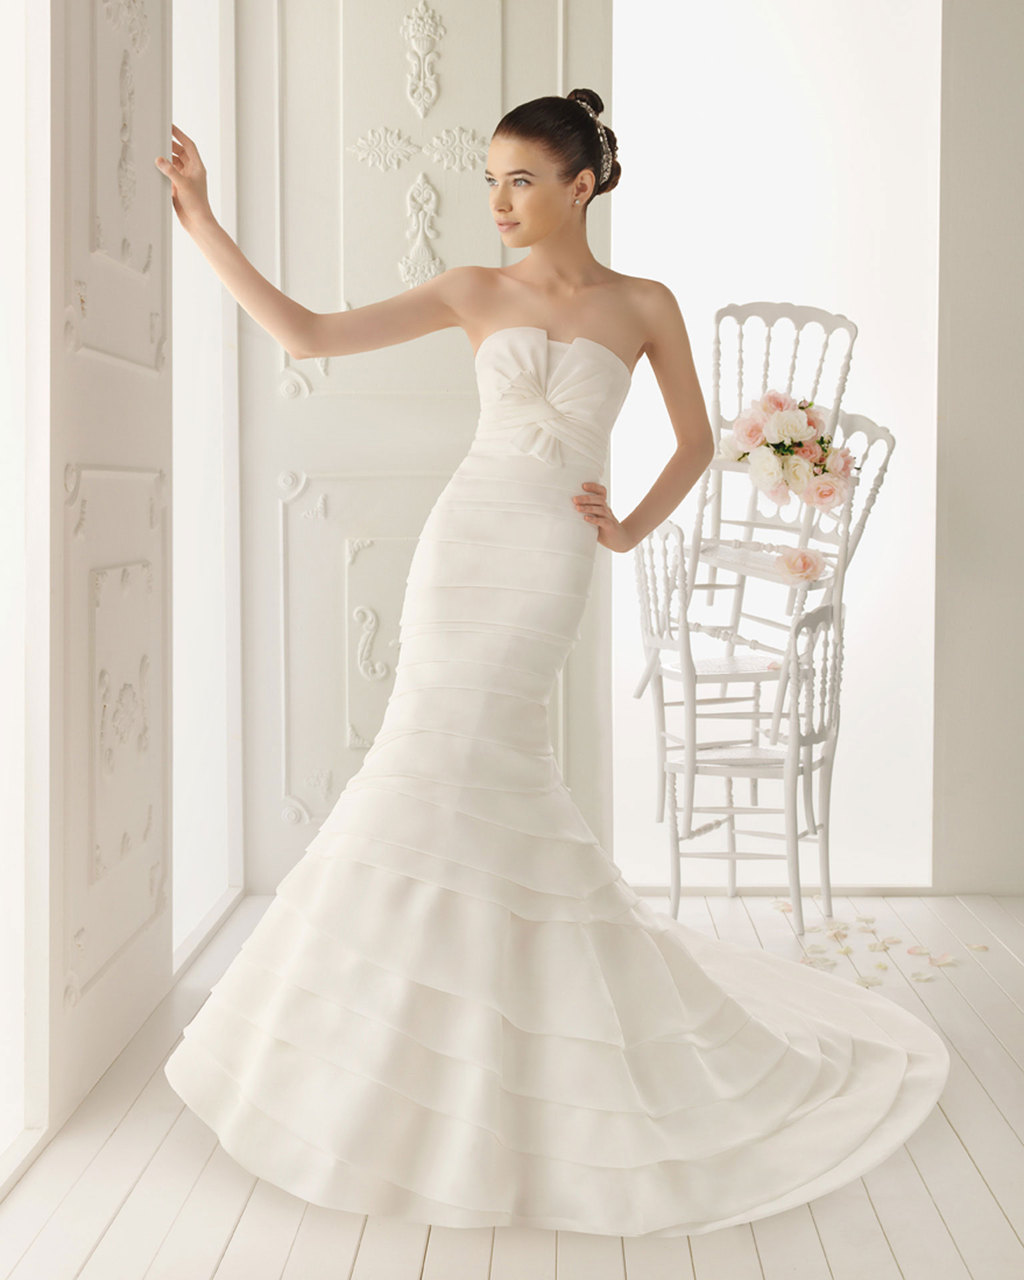 2013-wedding-dress-aire-barcelona-bridal-gowns-rolan.full